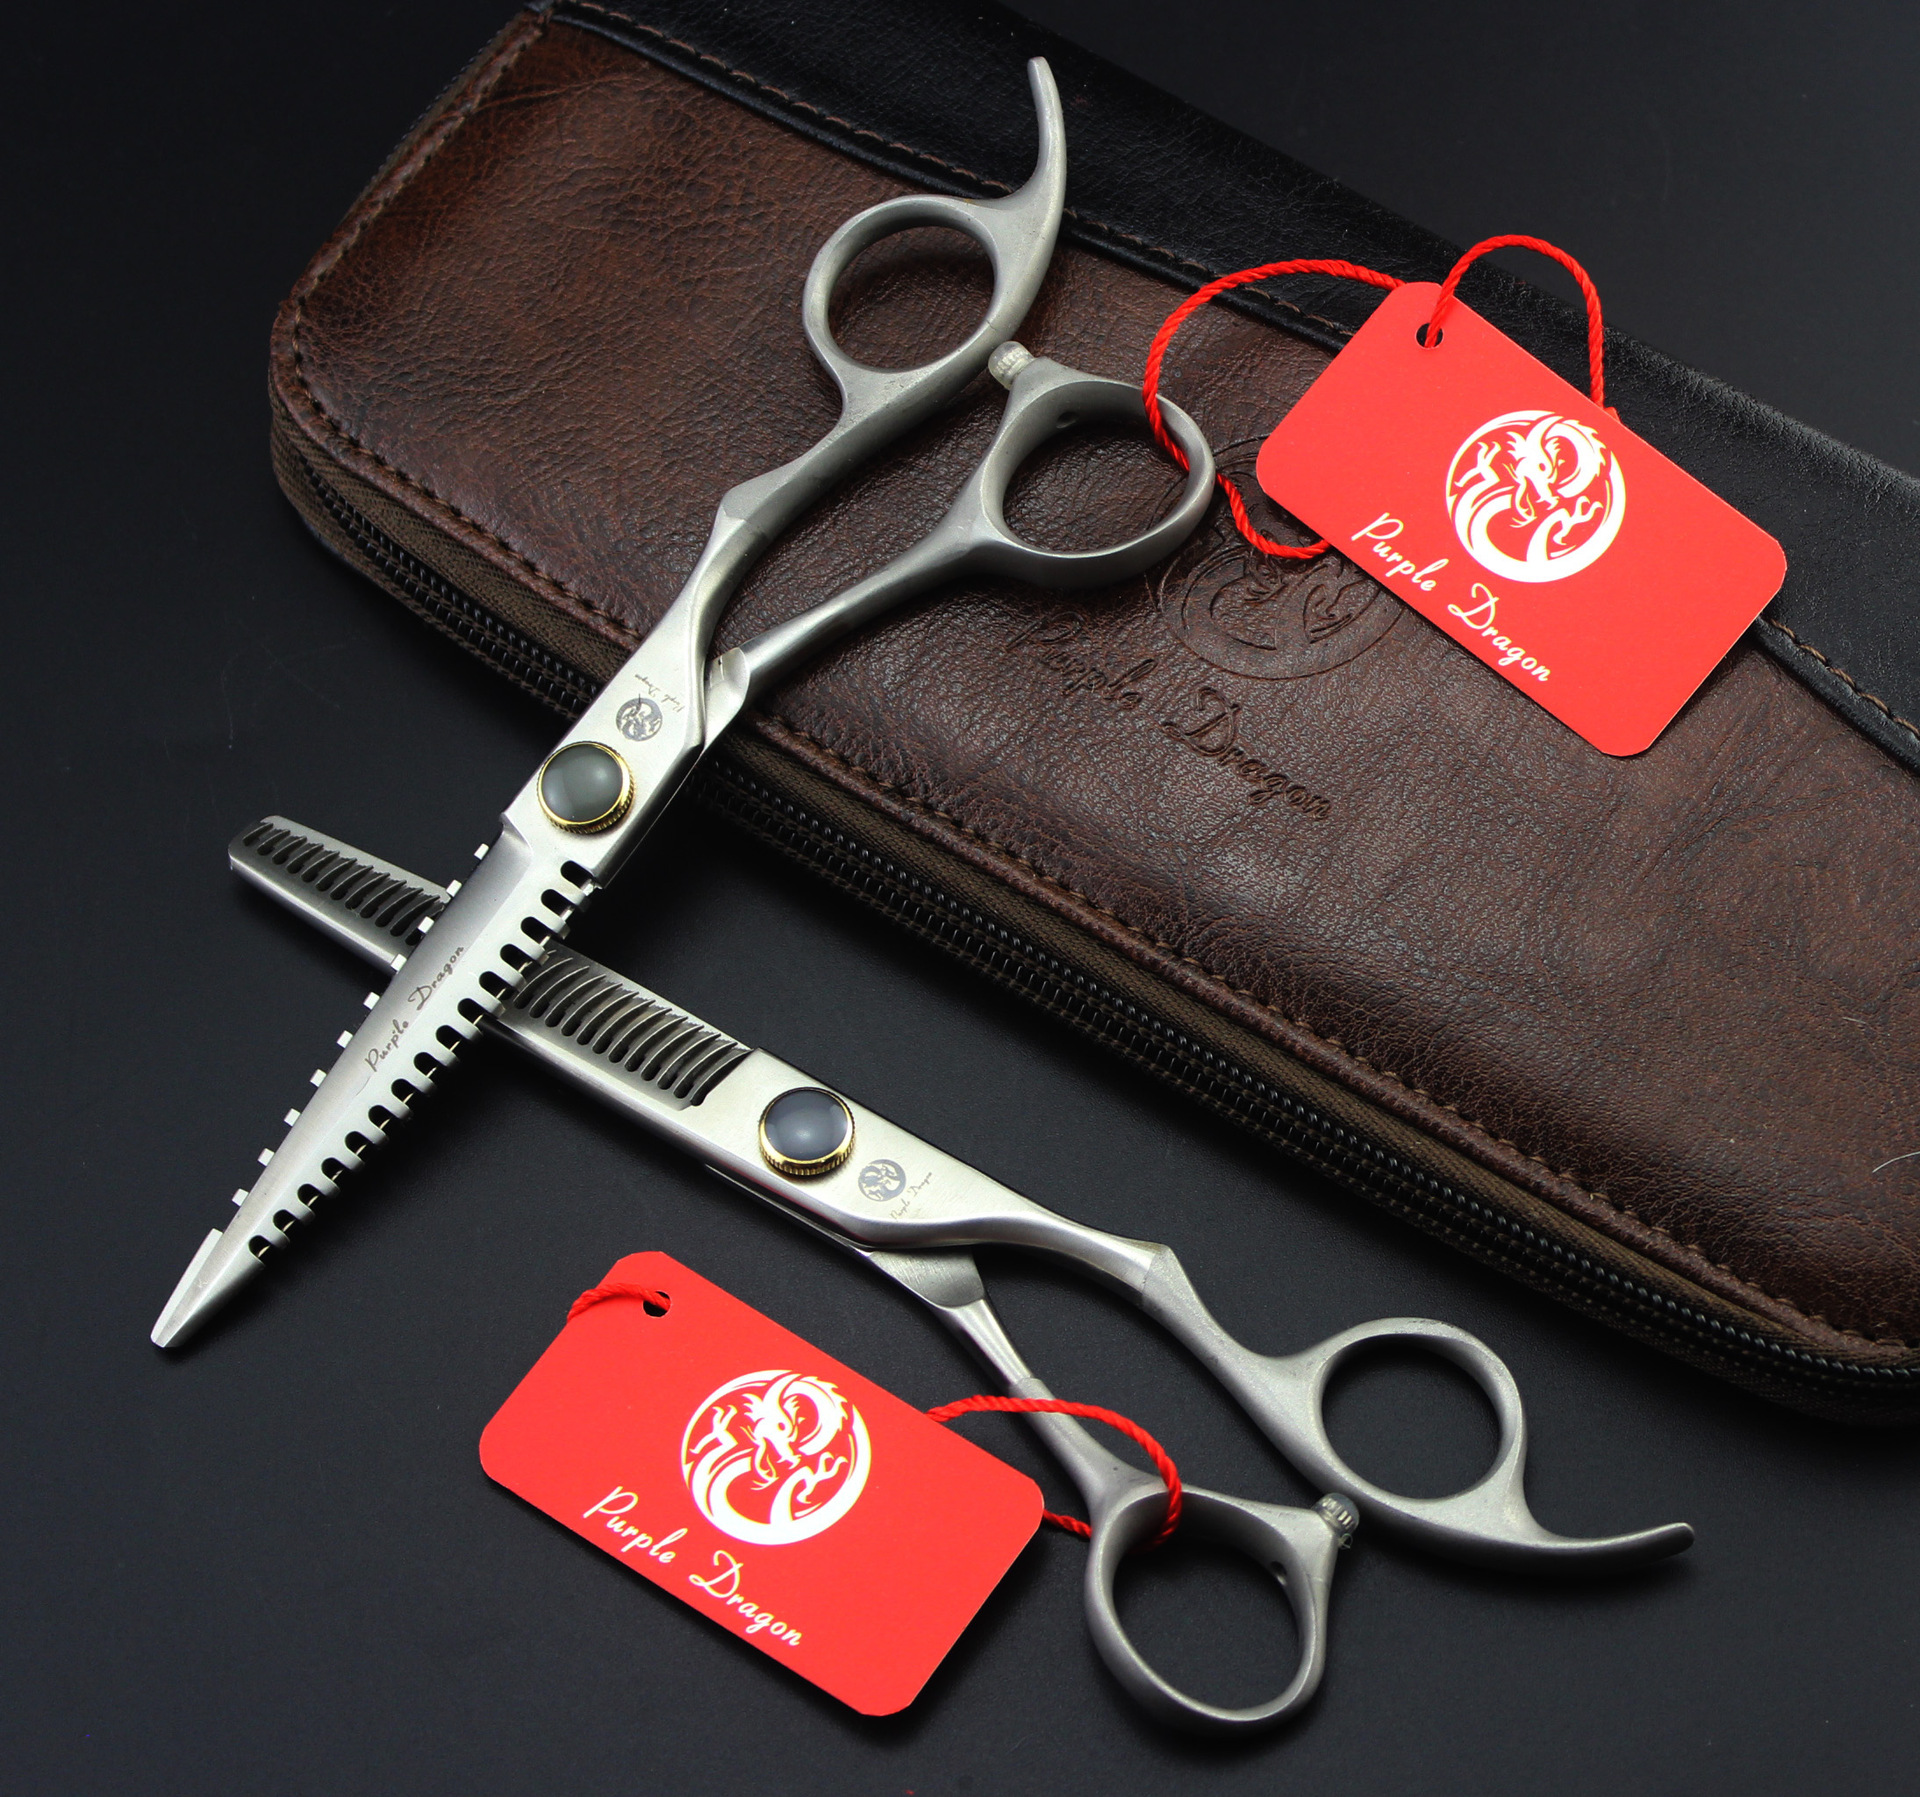 Professional Barber Salon Hair Cutting Thinning Scissors Shears Hairdressing 50pcs lot 6r1k4c6